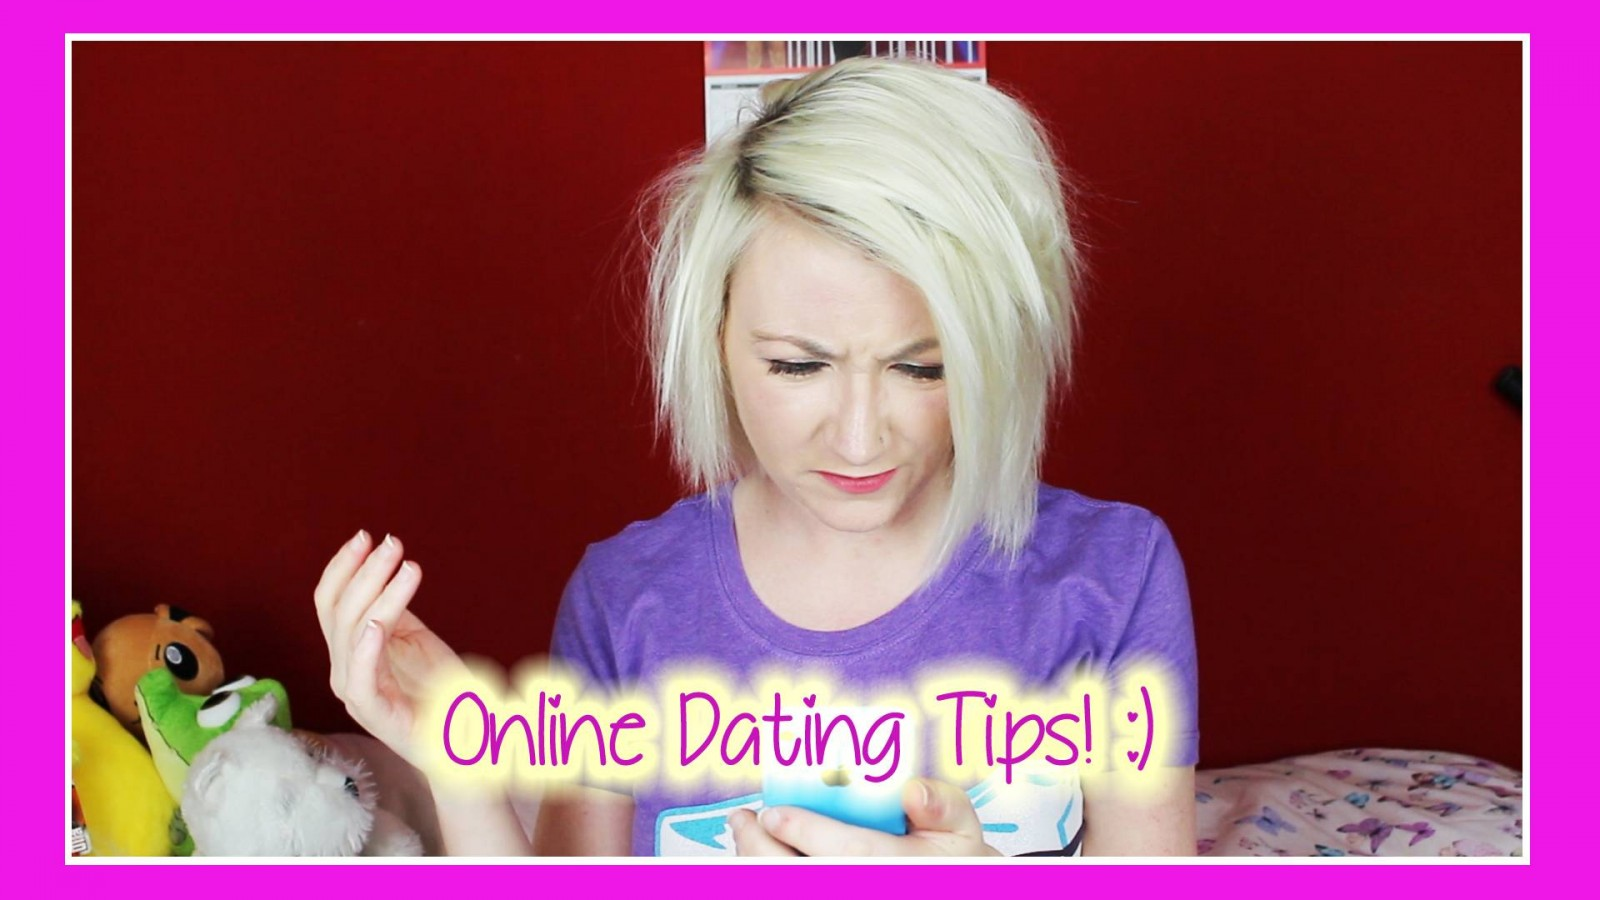 Online Dating Tips for Guys!